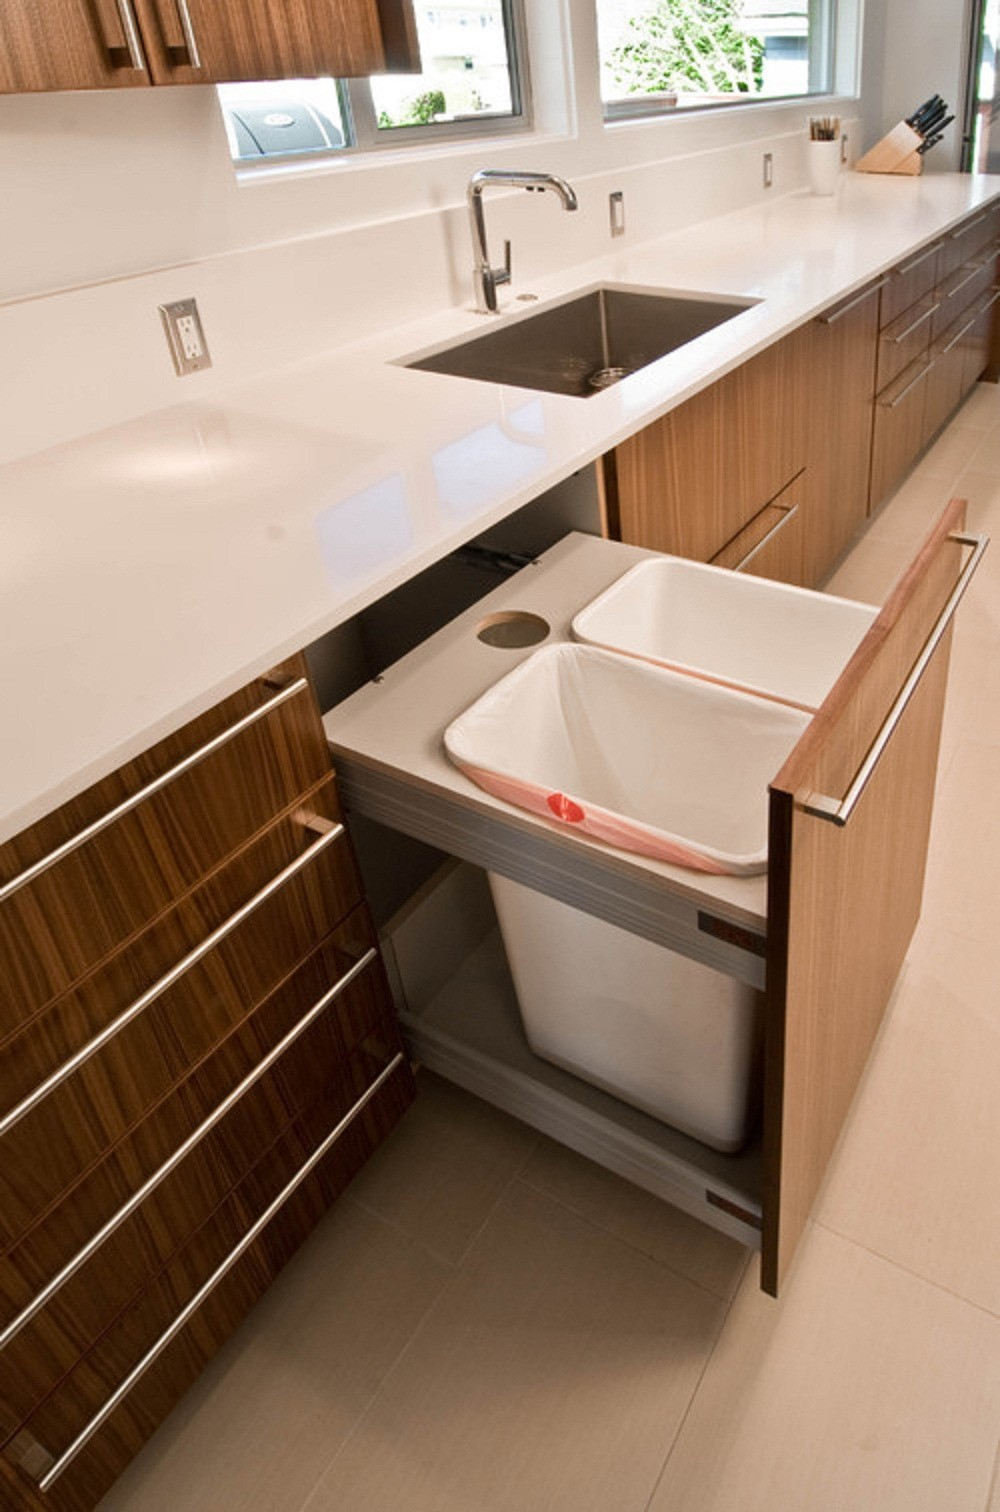 Clean and Stylish Kitchen Garbage Cans